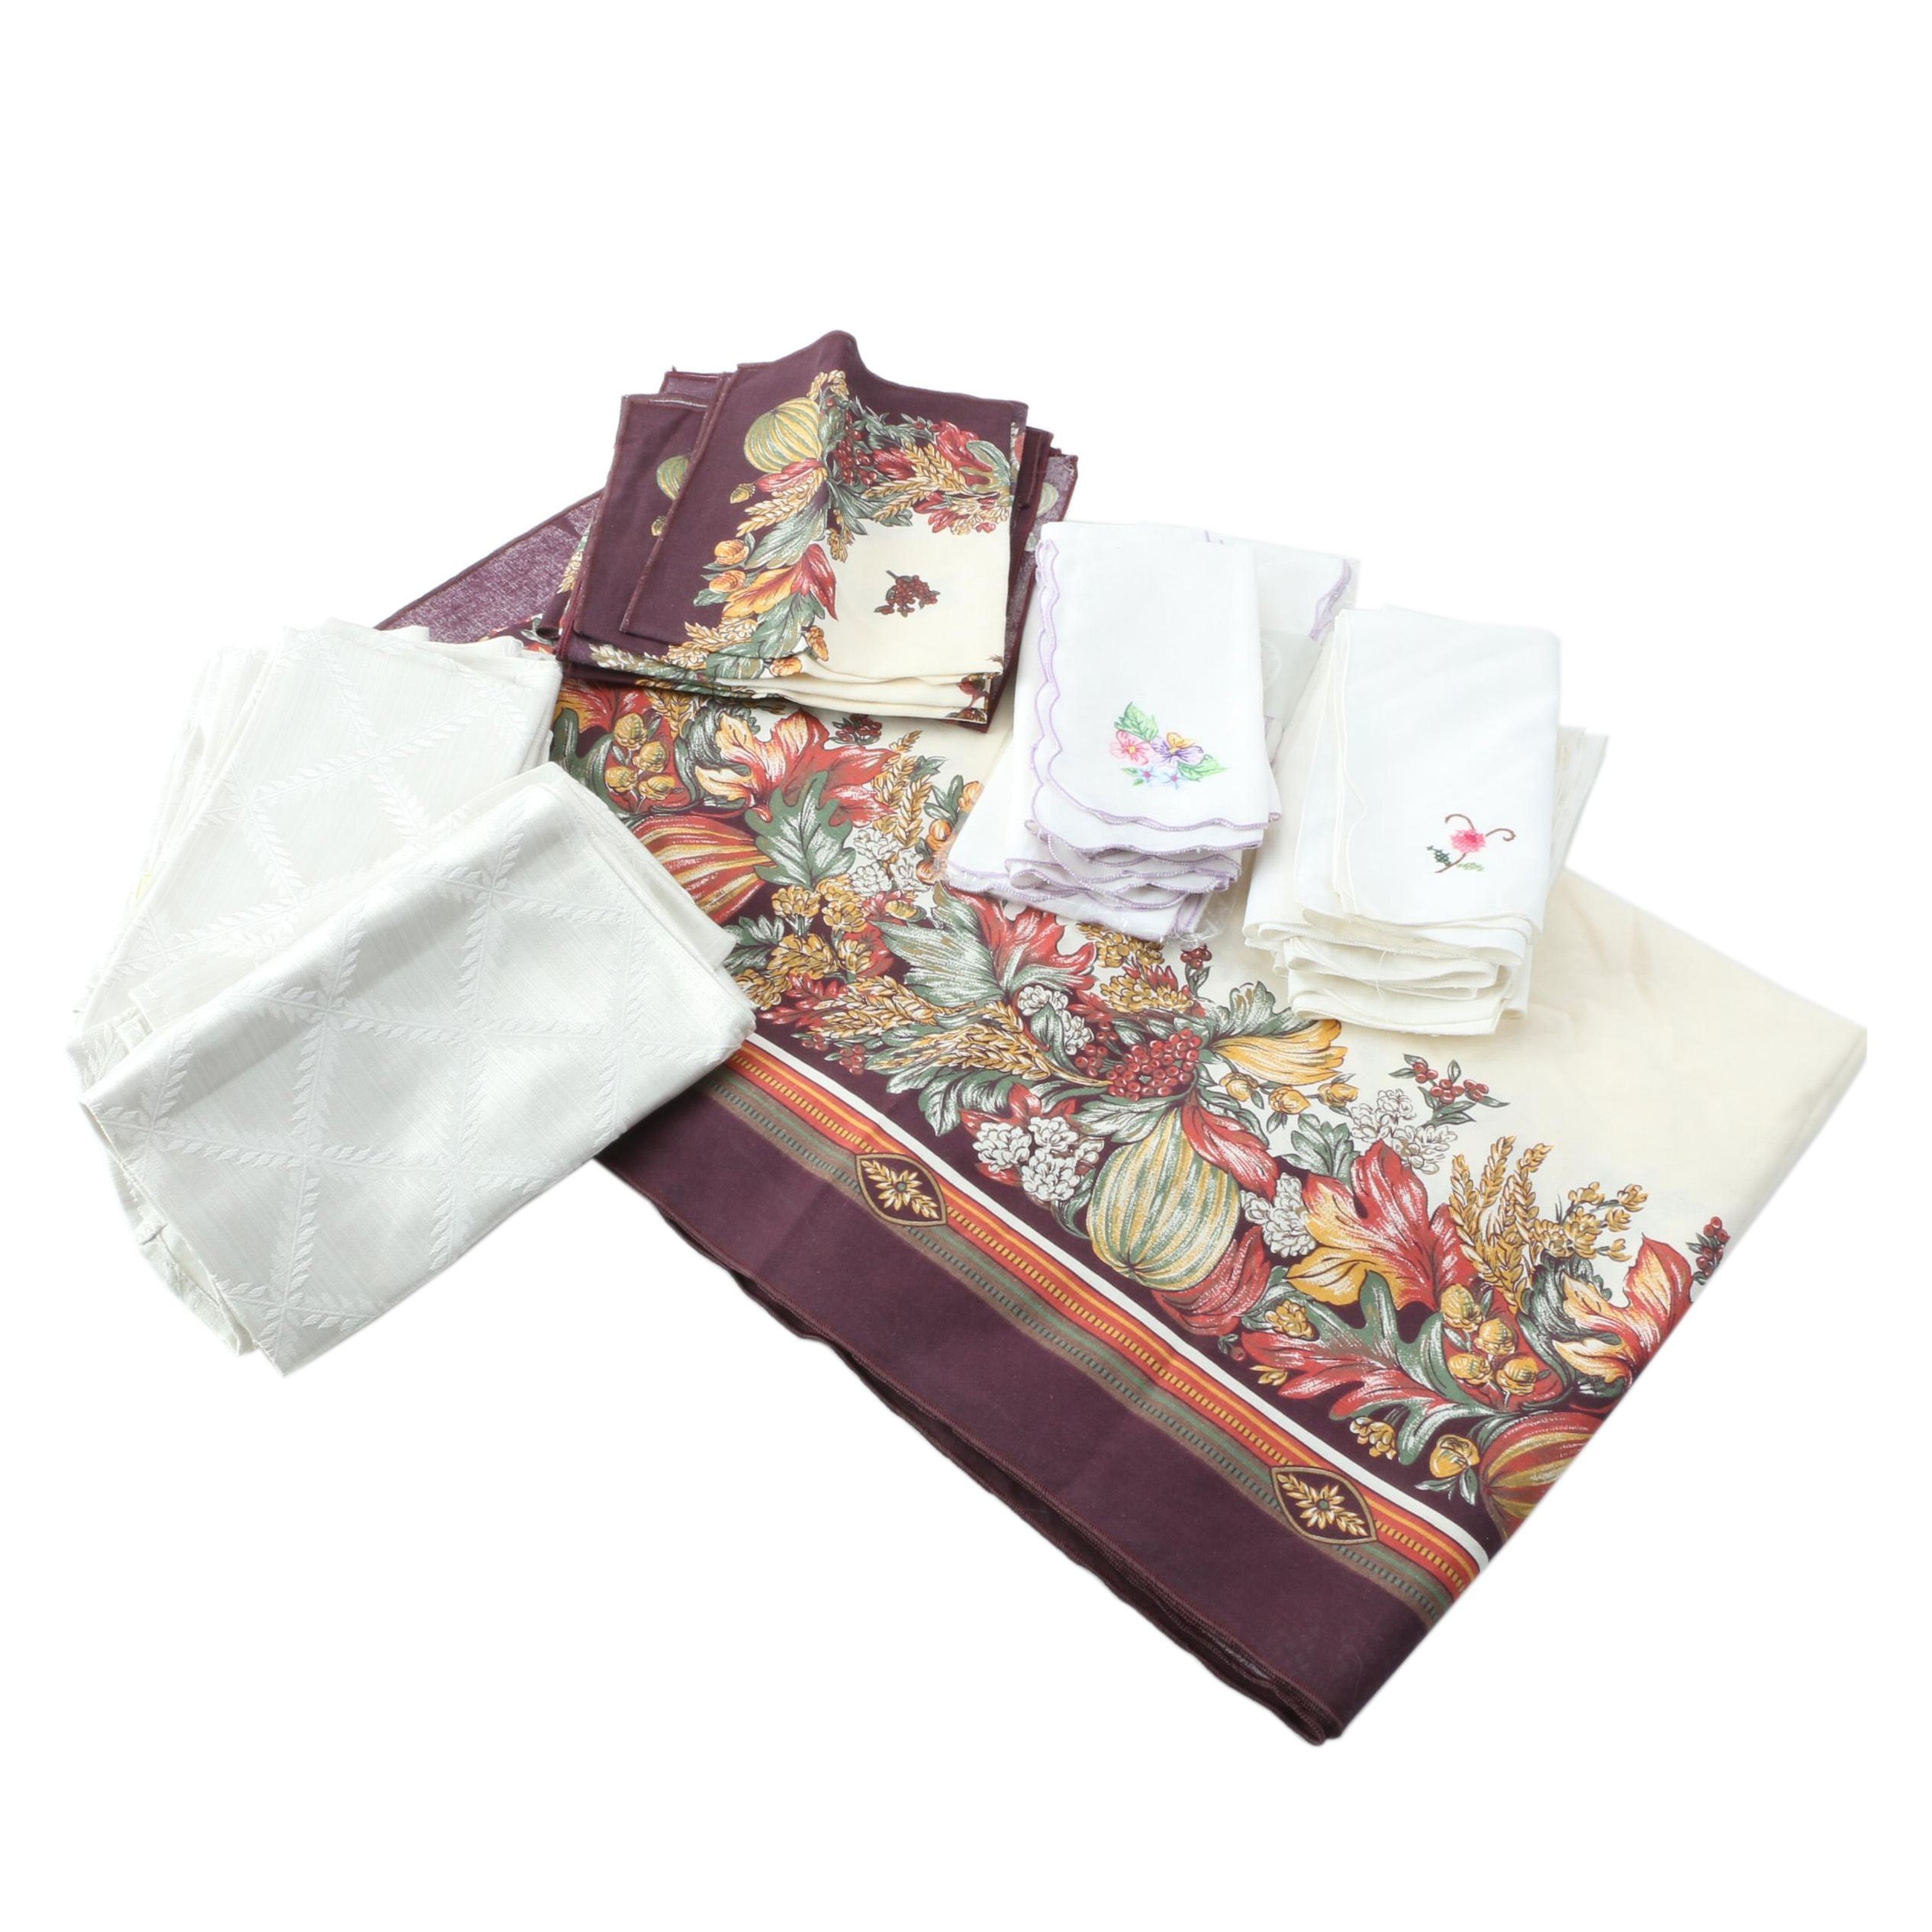 Table Linens Including Autumn Print Tablecloth Set and Embroidered Napkins